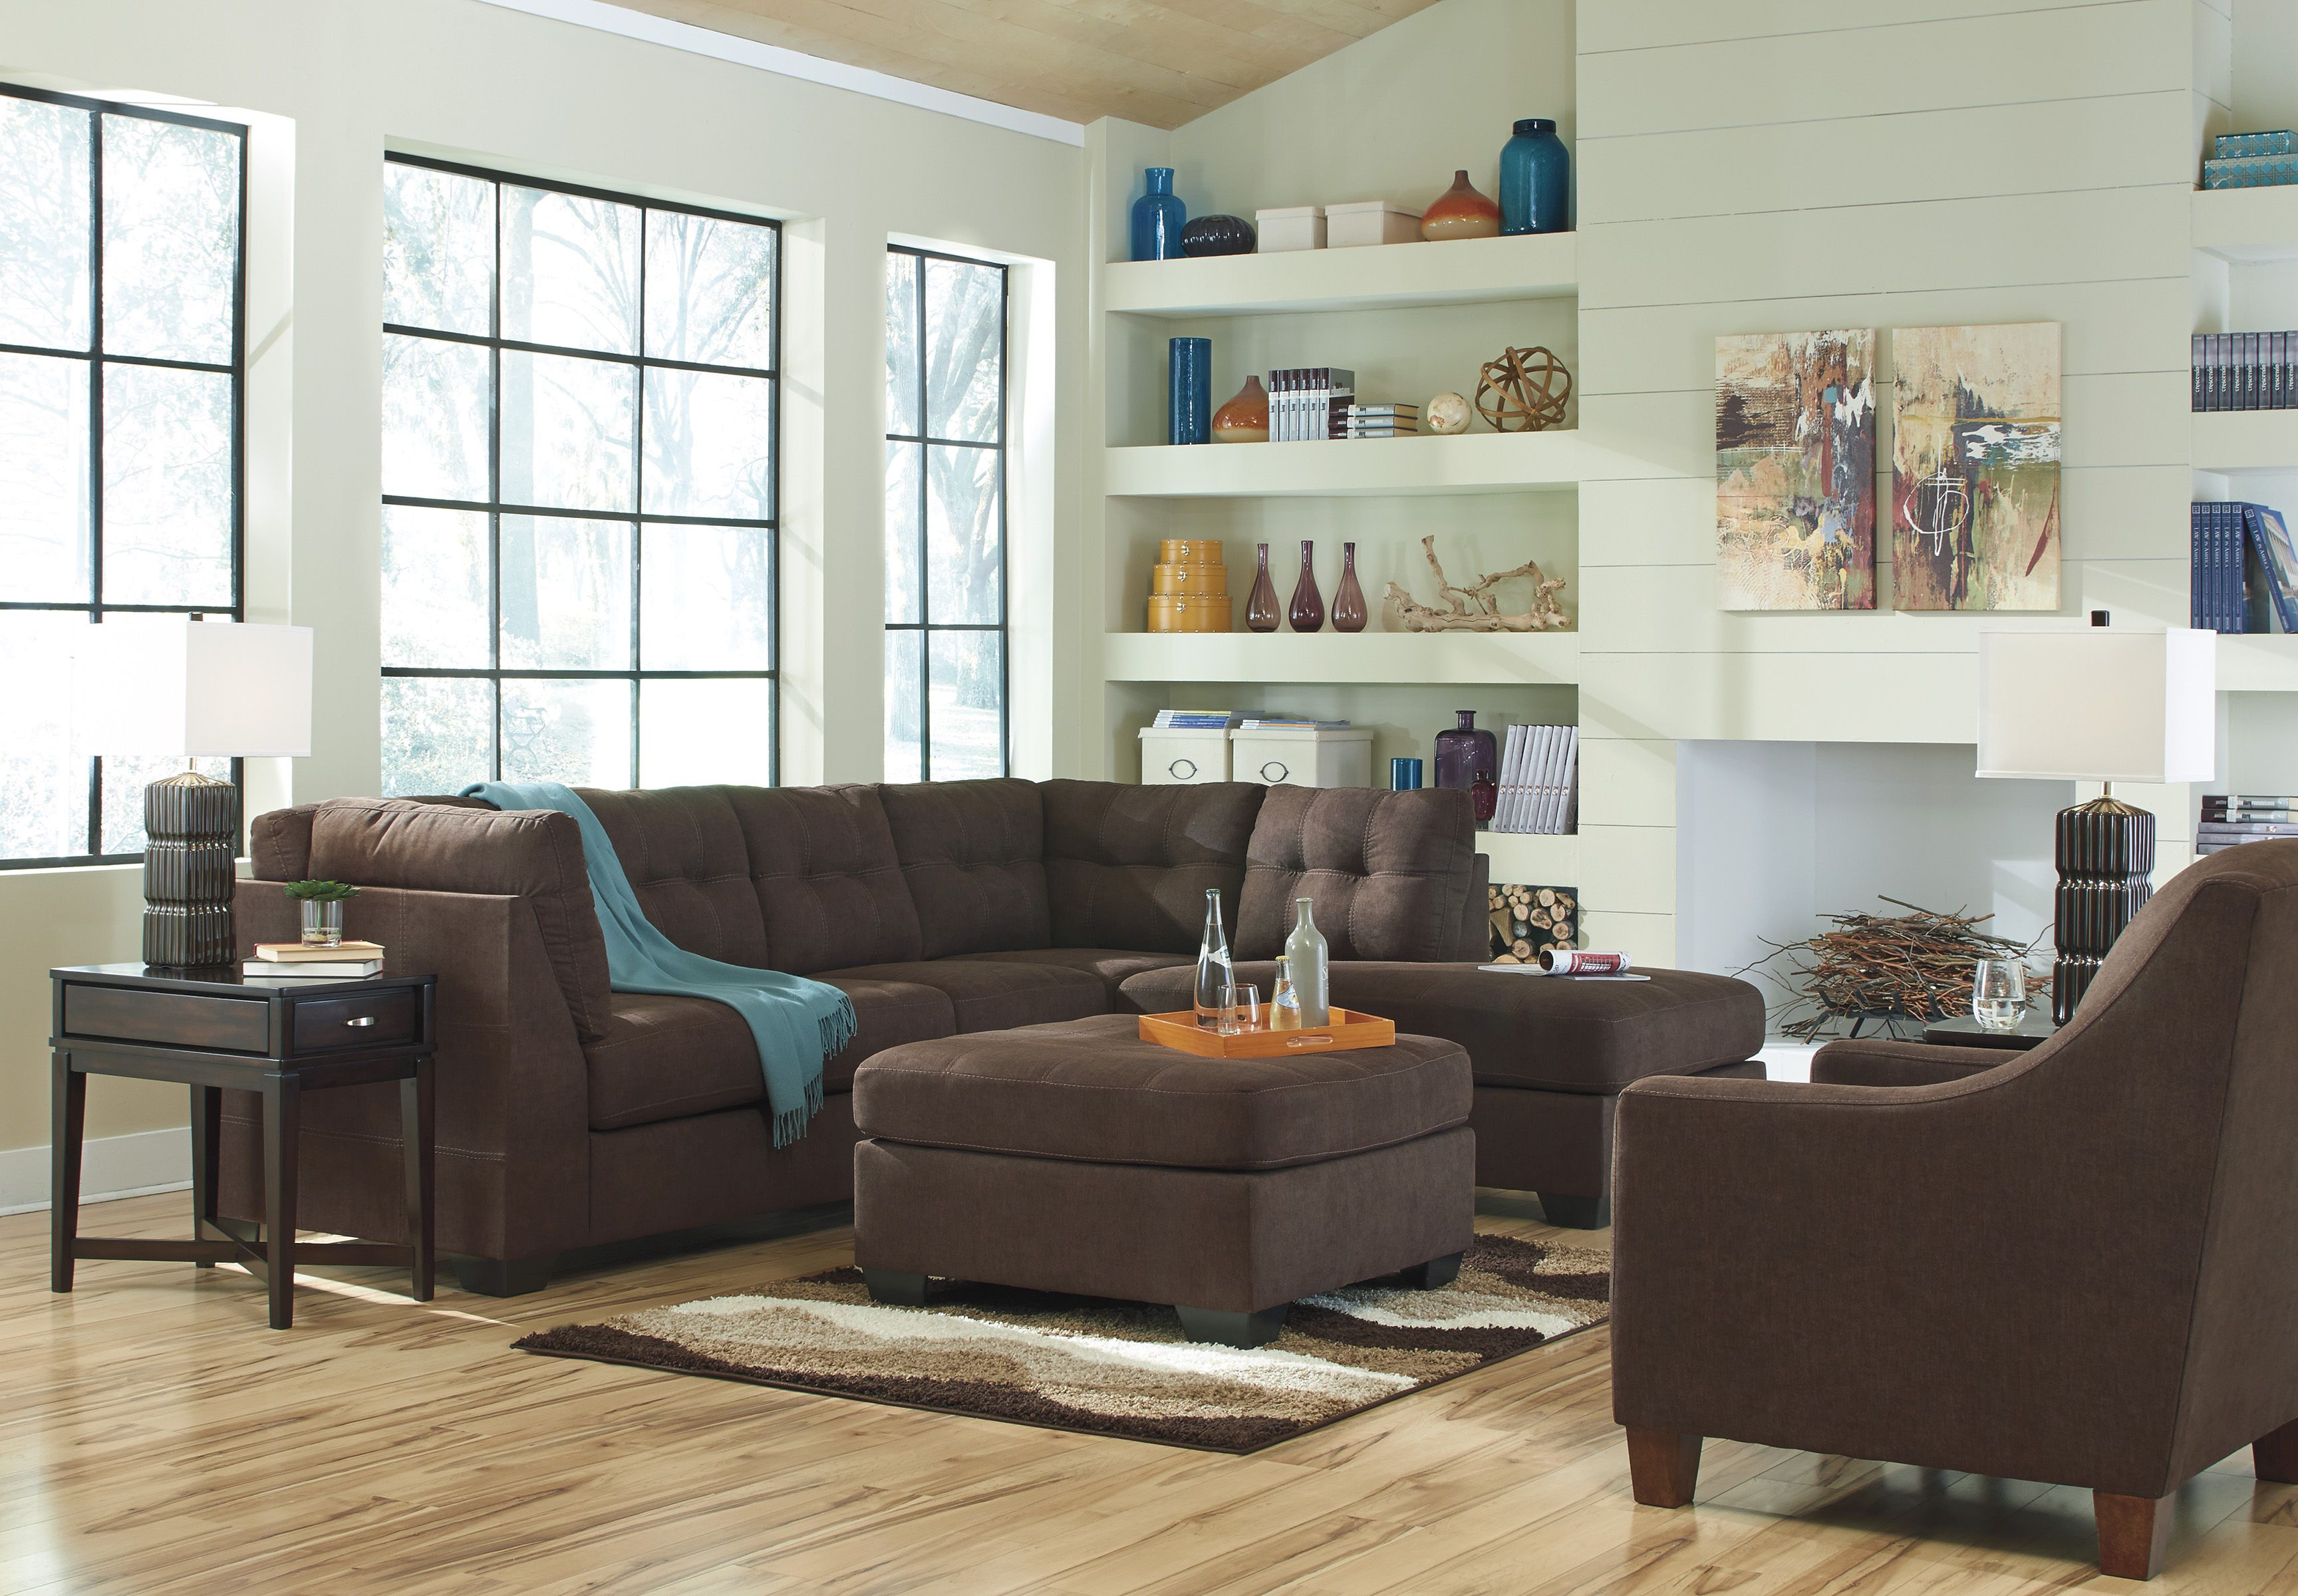 Genial 2 Piece Contemporary Sectional In Brown   Sam Levitz Furniture